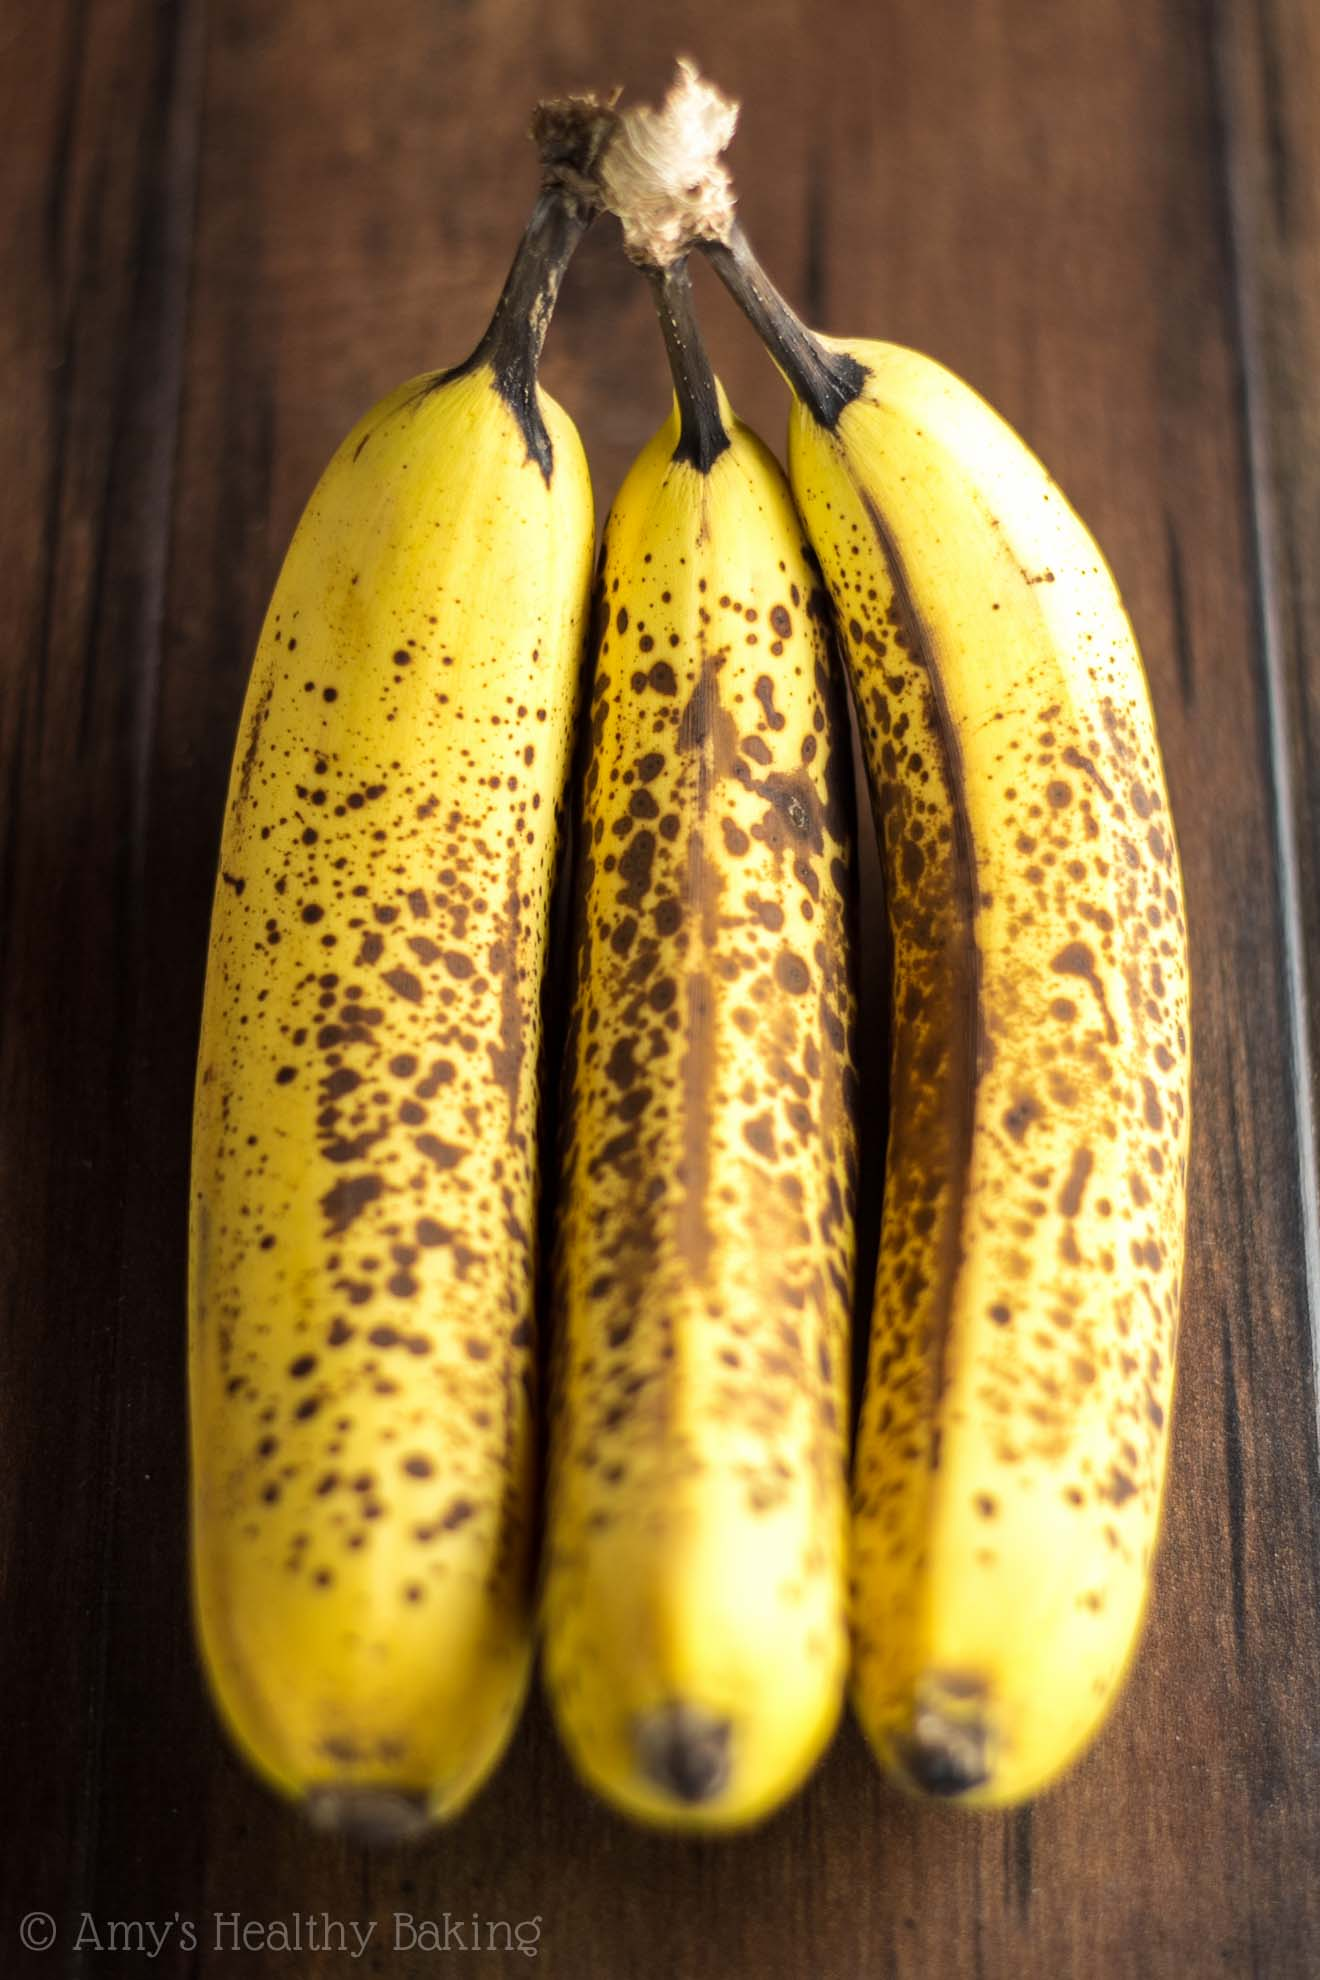 Ripe bananas perfect for baking